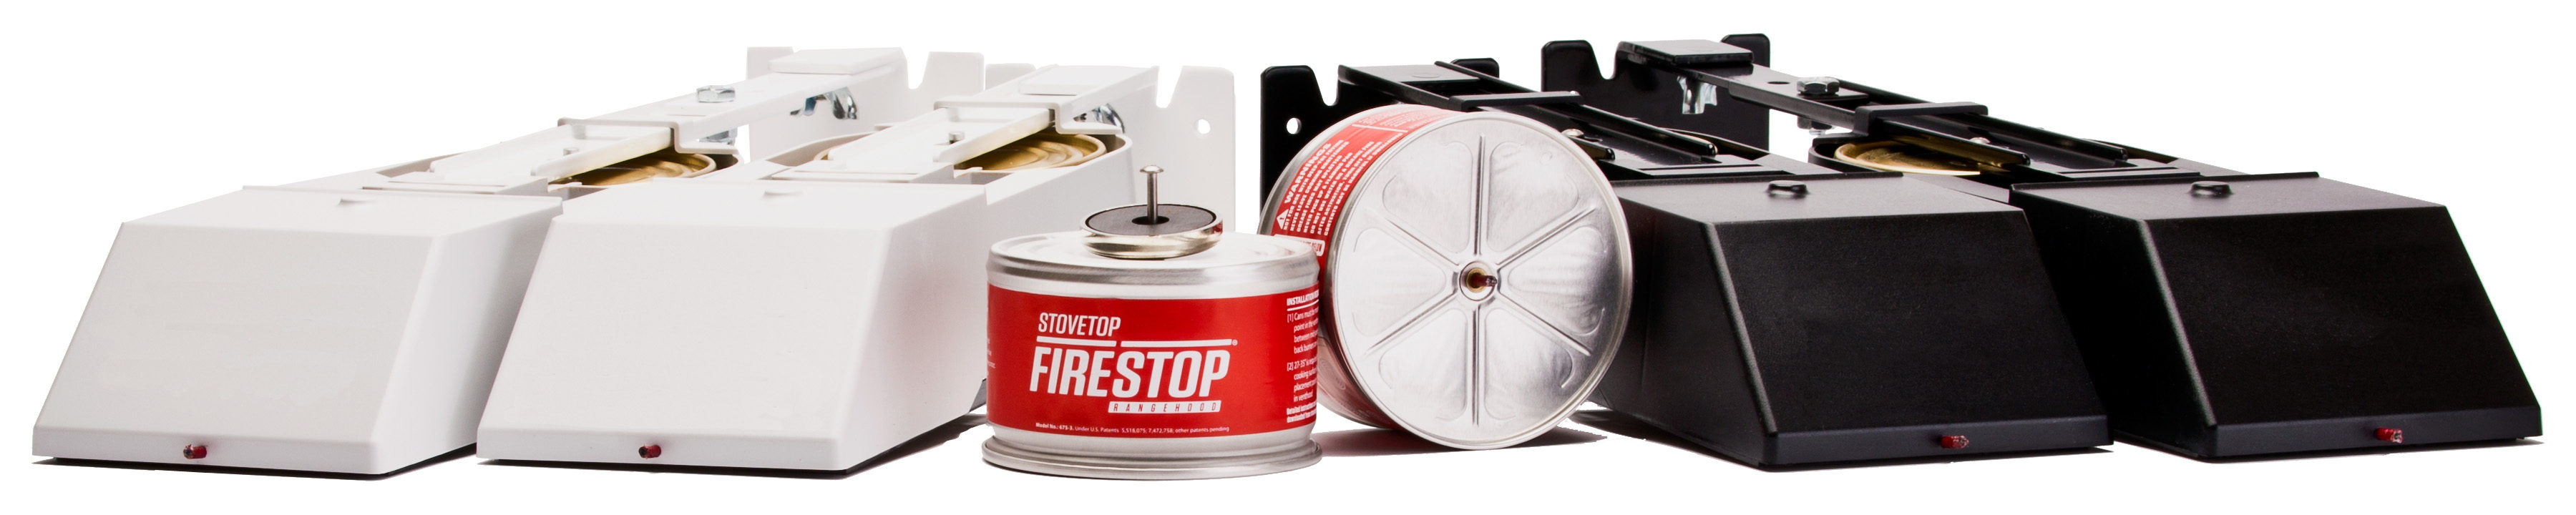 StoveTop FireStop® Automatic Fire Suppression System